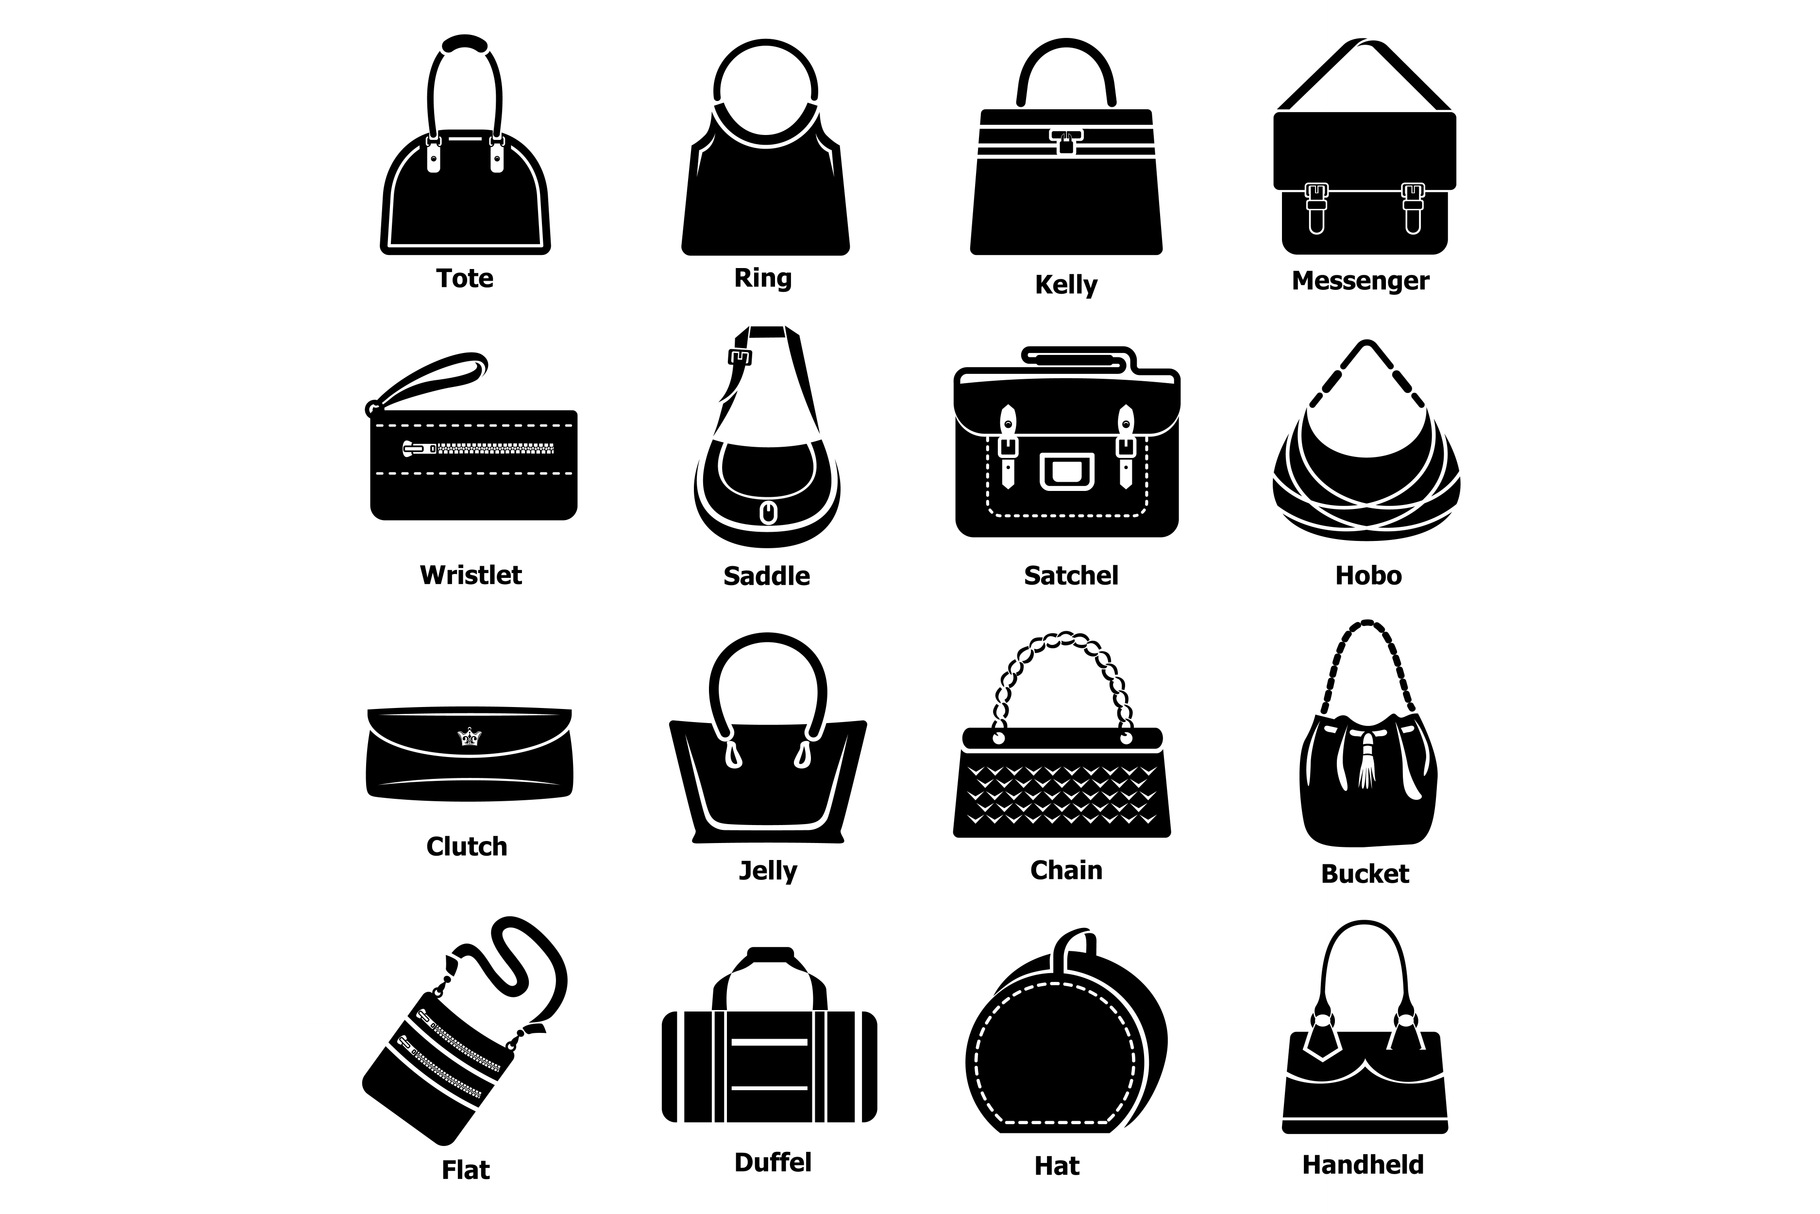 Woman bag types icons set, simple style example image 1